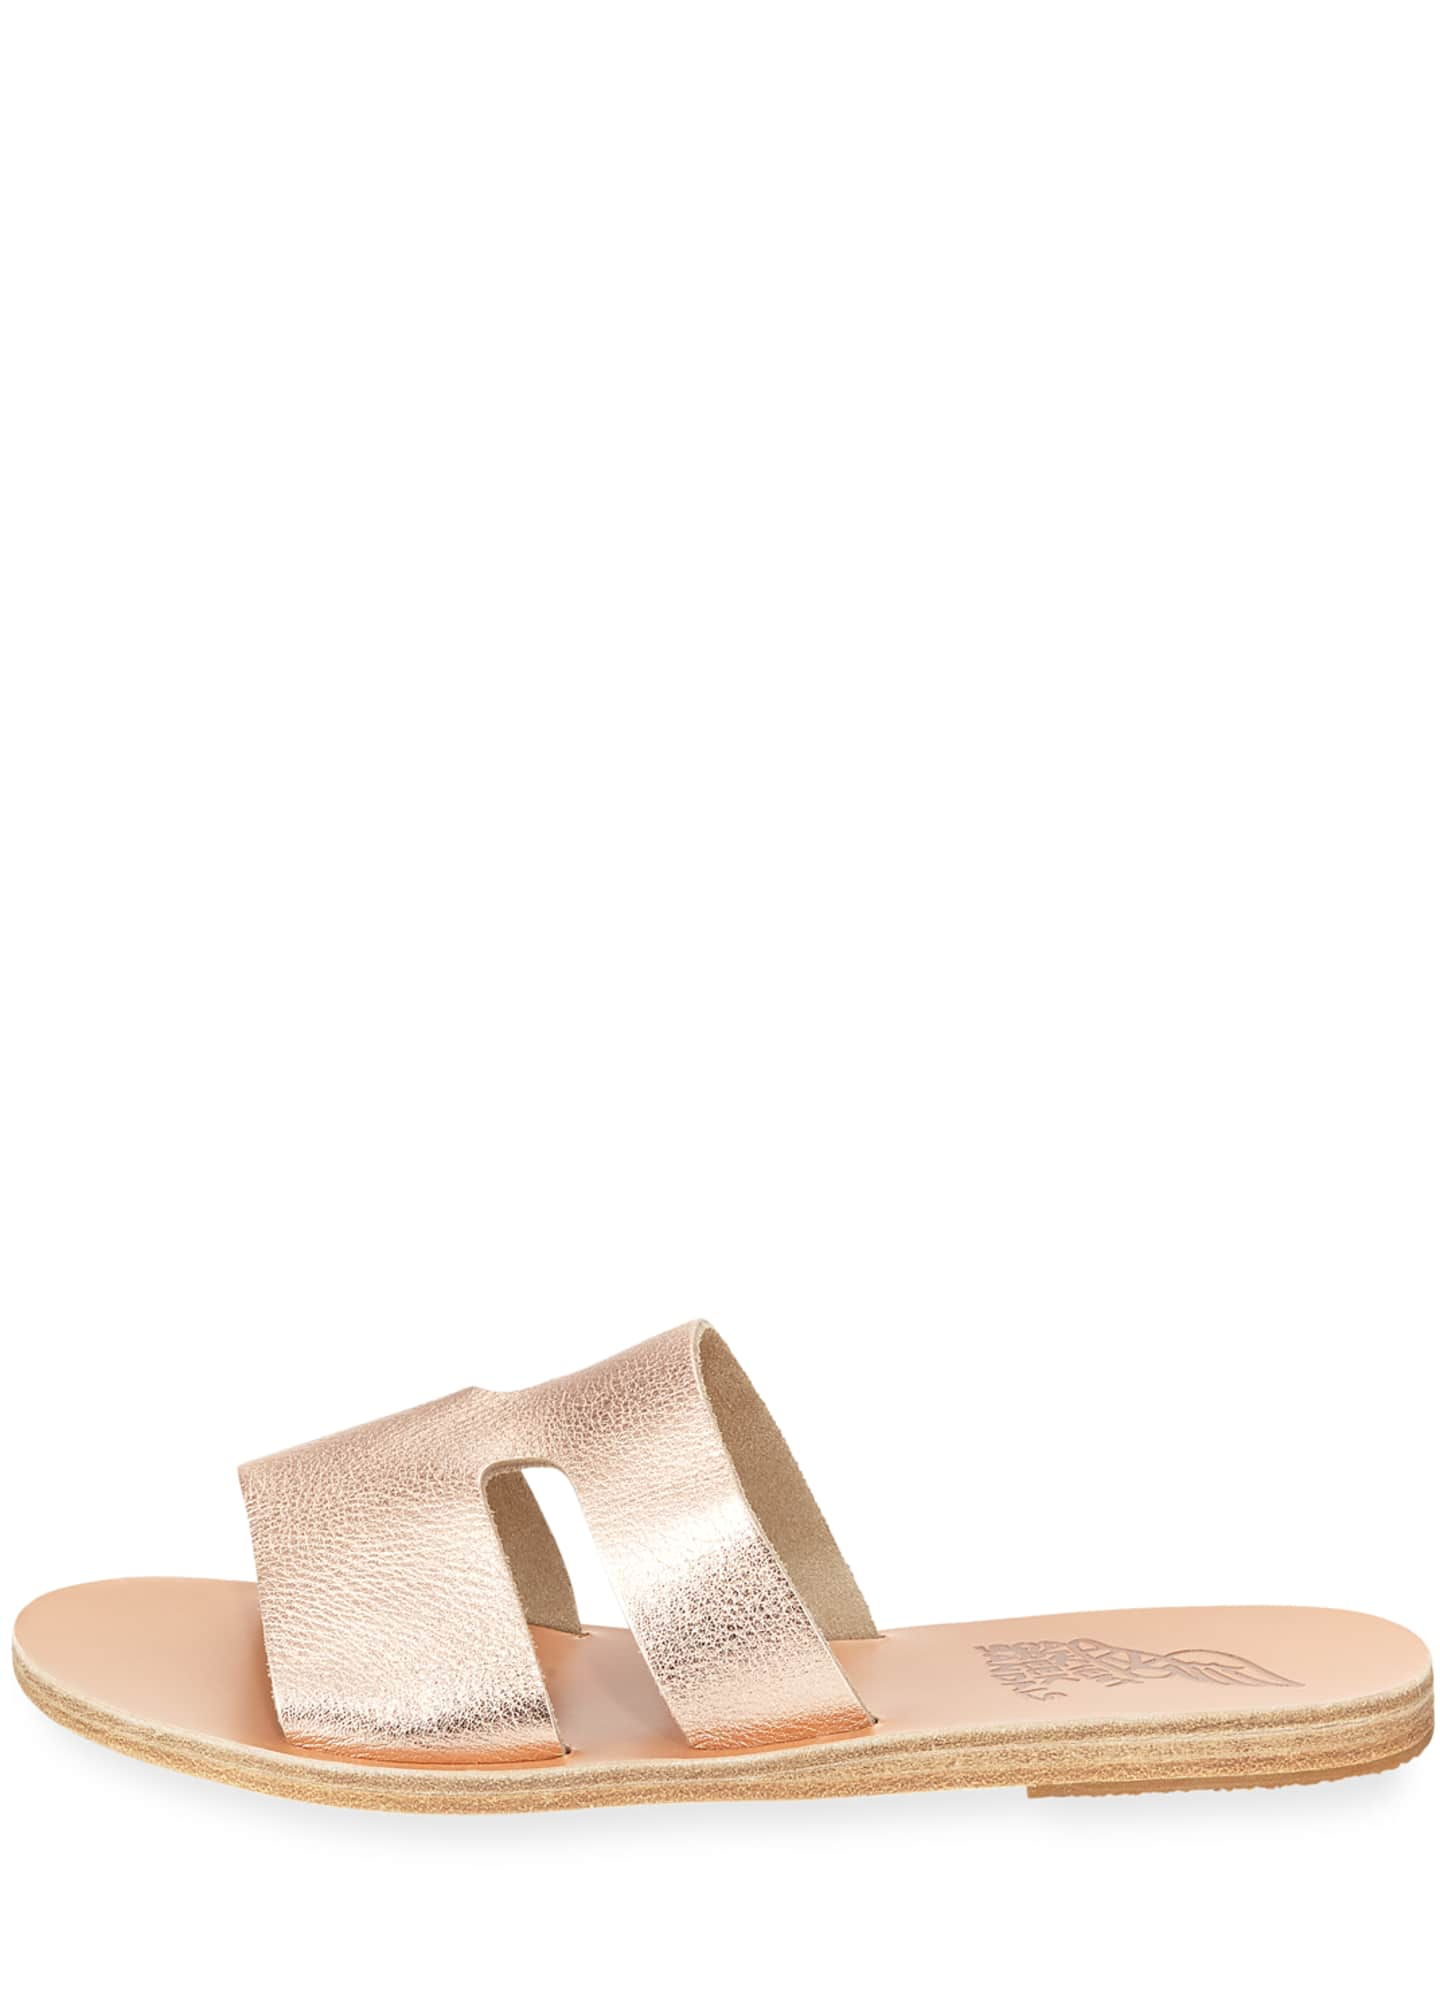 Image 2 of 3: Apteros Cutout Leather Flat Slide Sandals, Sand